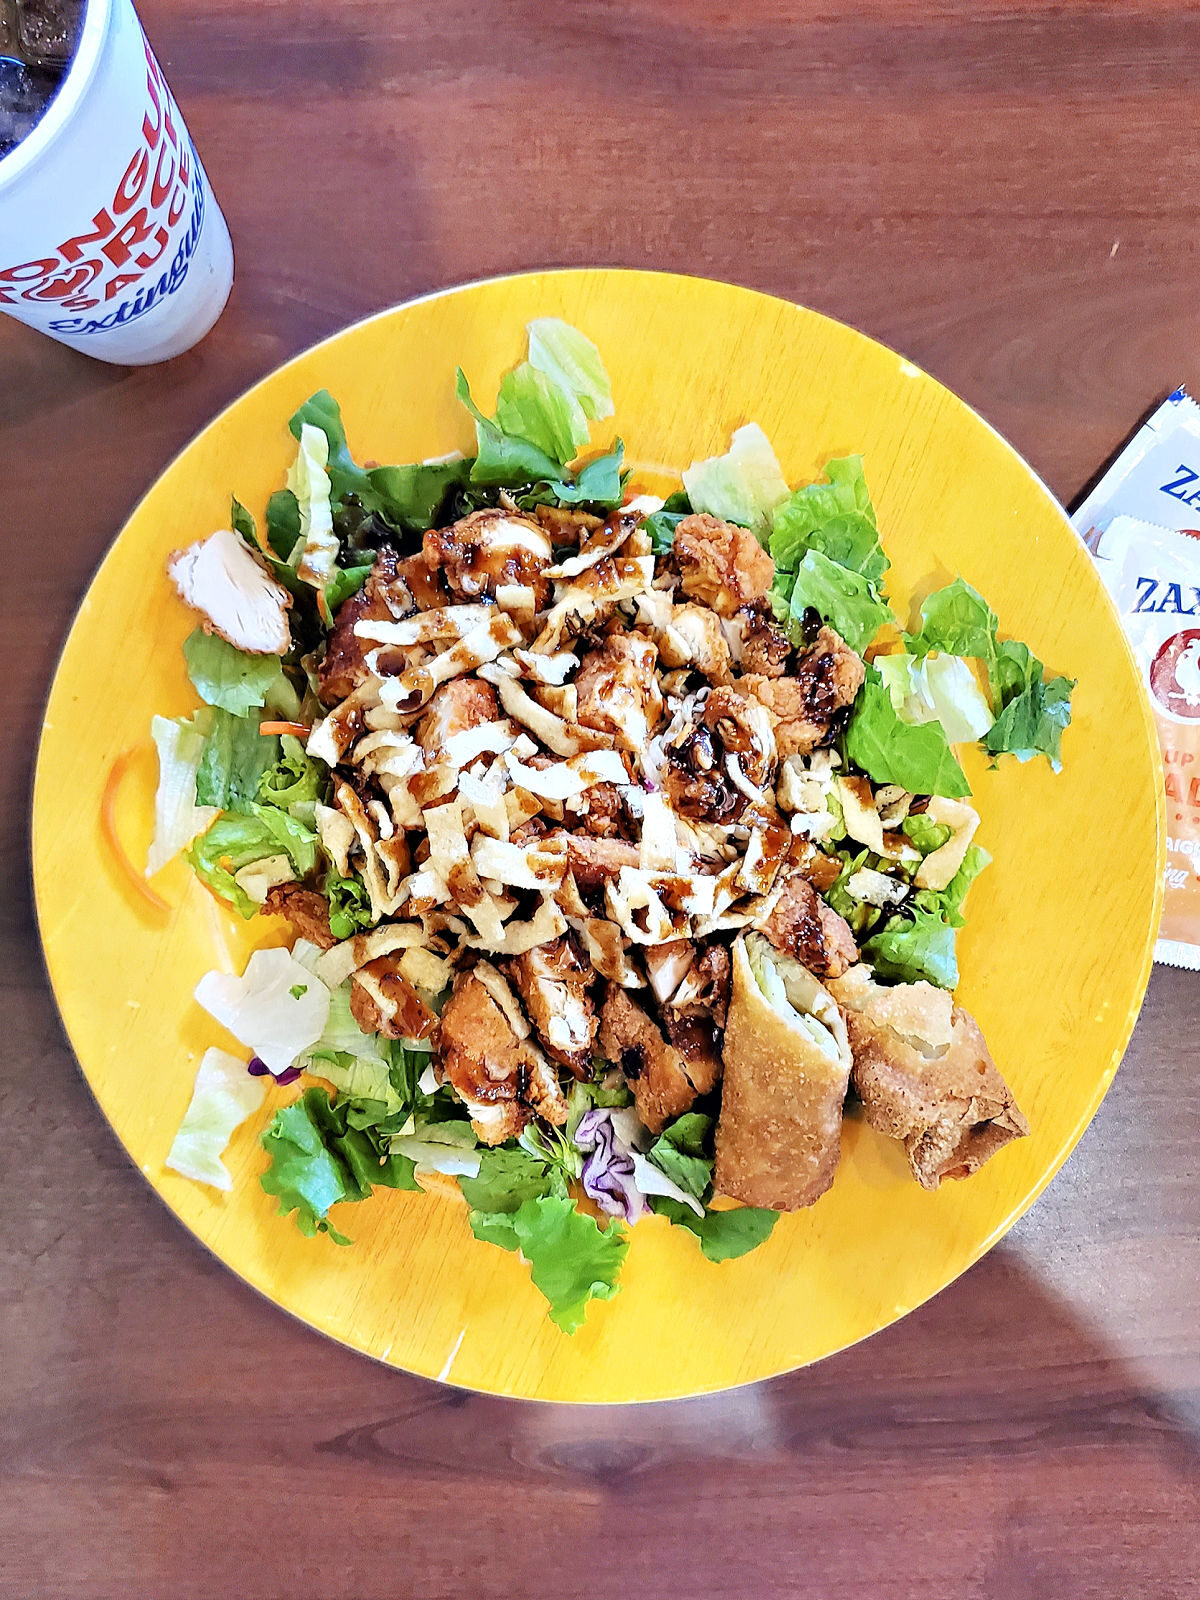 Zaxby's Zensation salad on a yellow plate served with an eggroll.